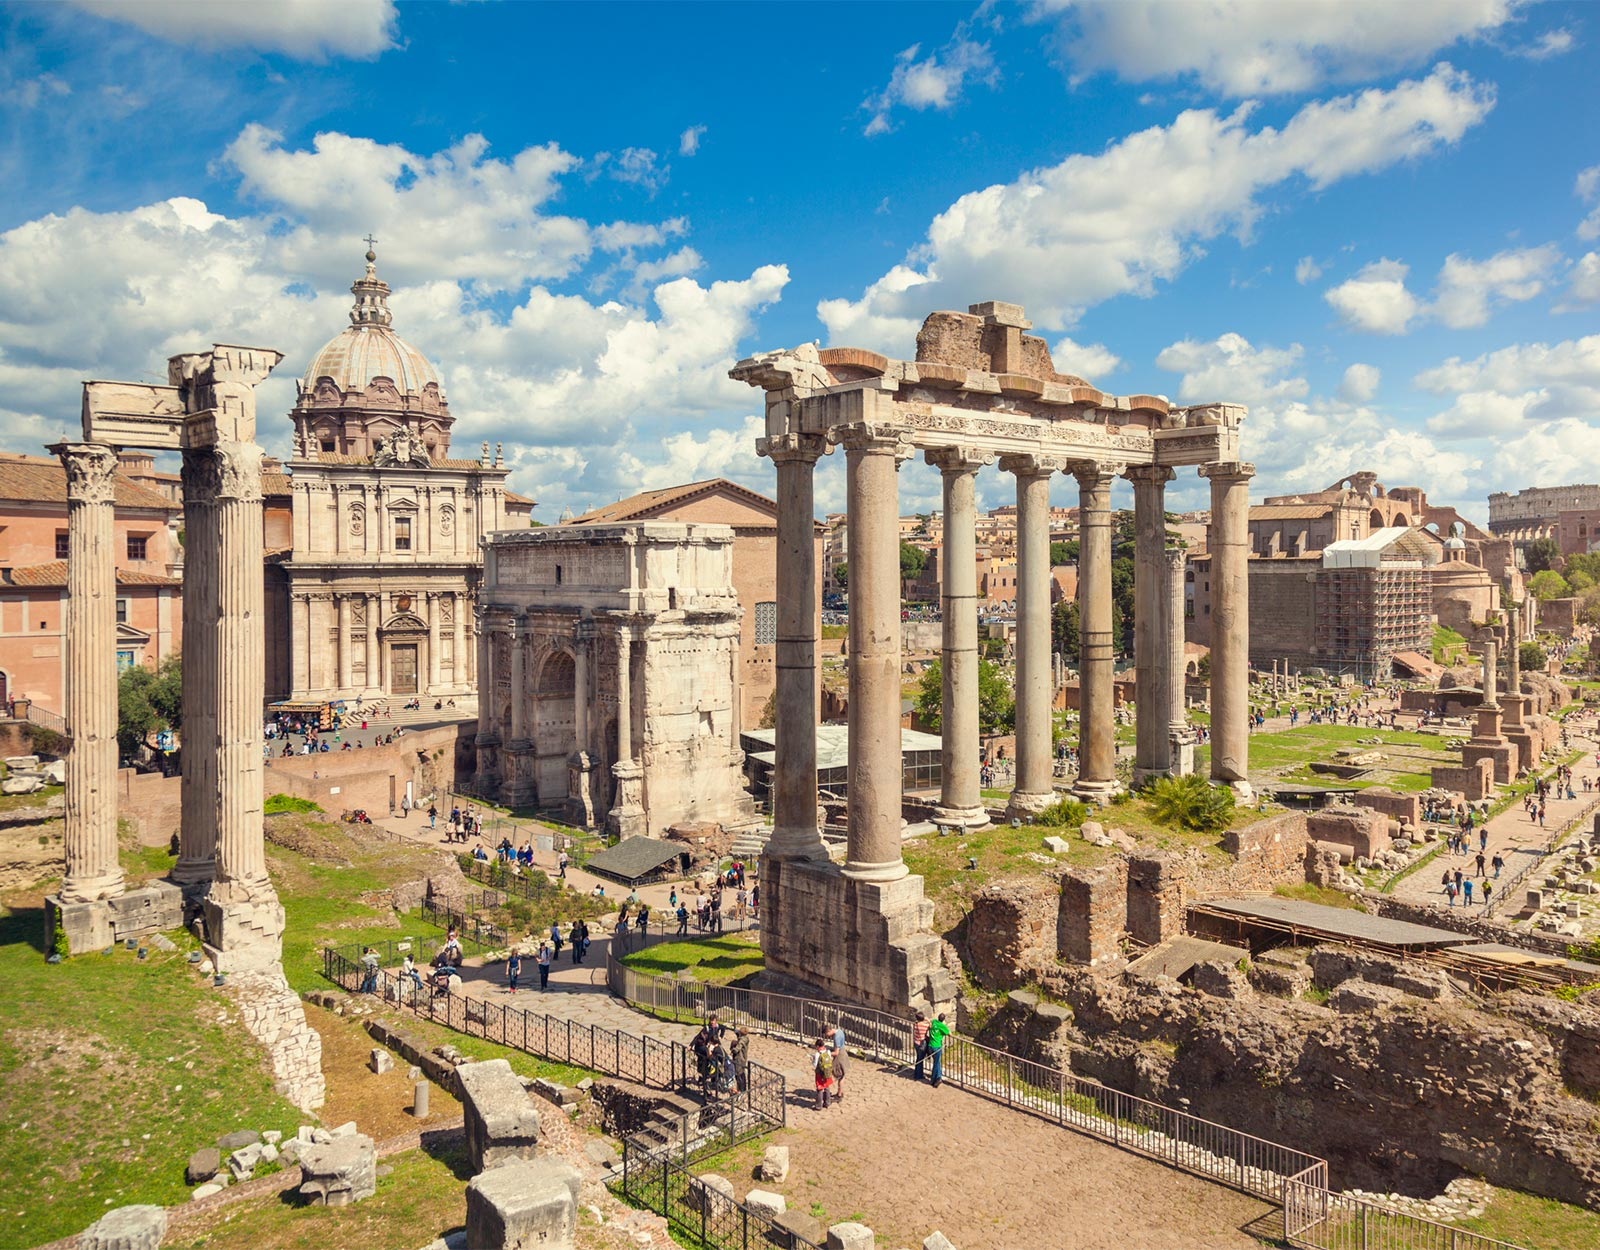 How to Spend Summer in Rome